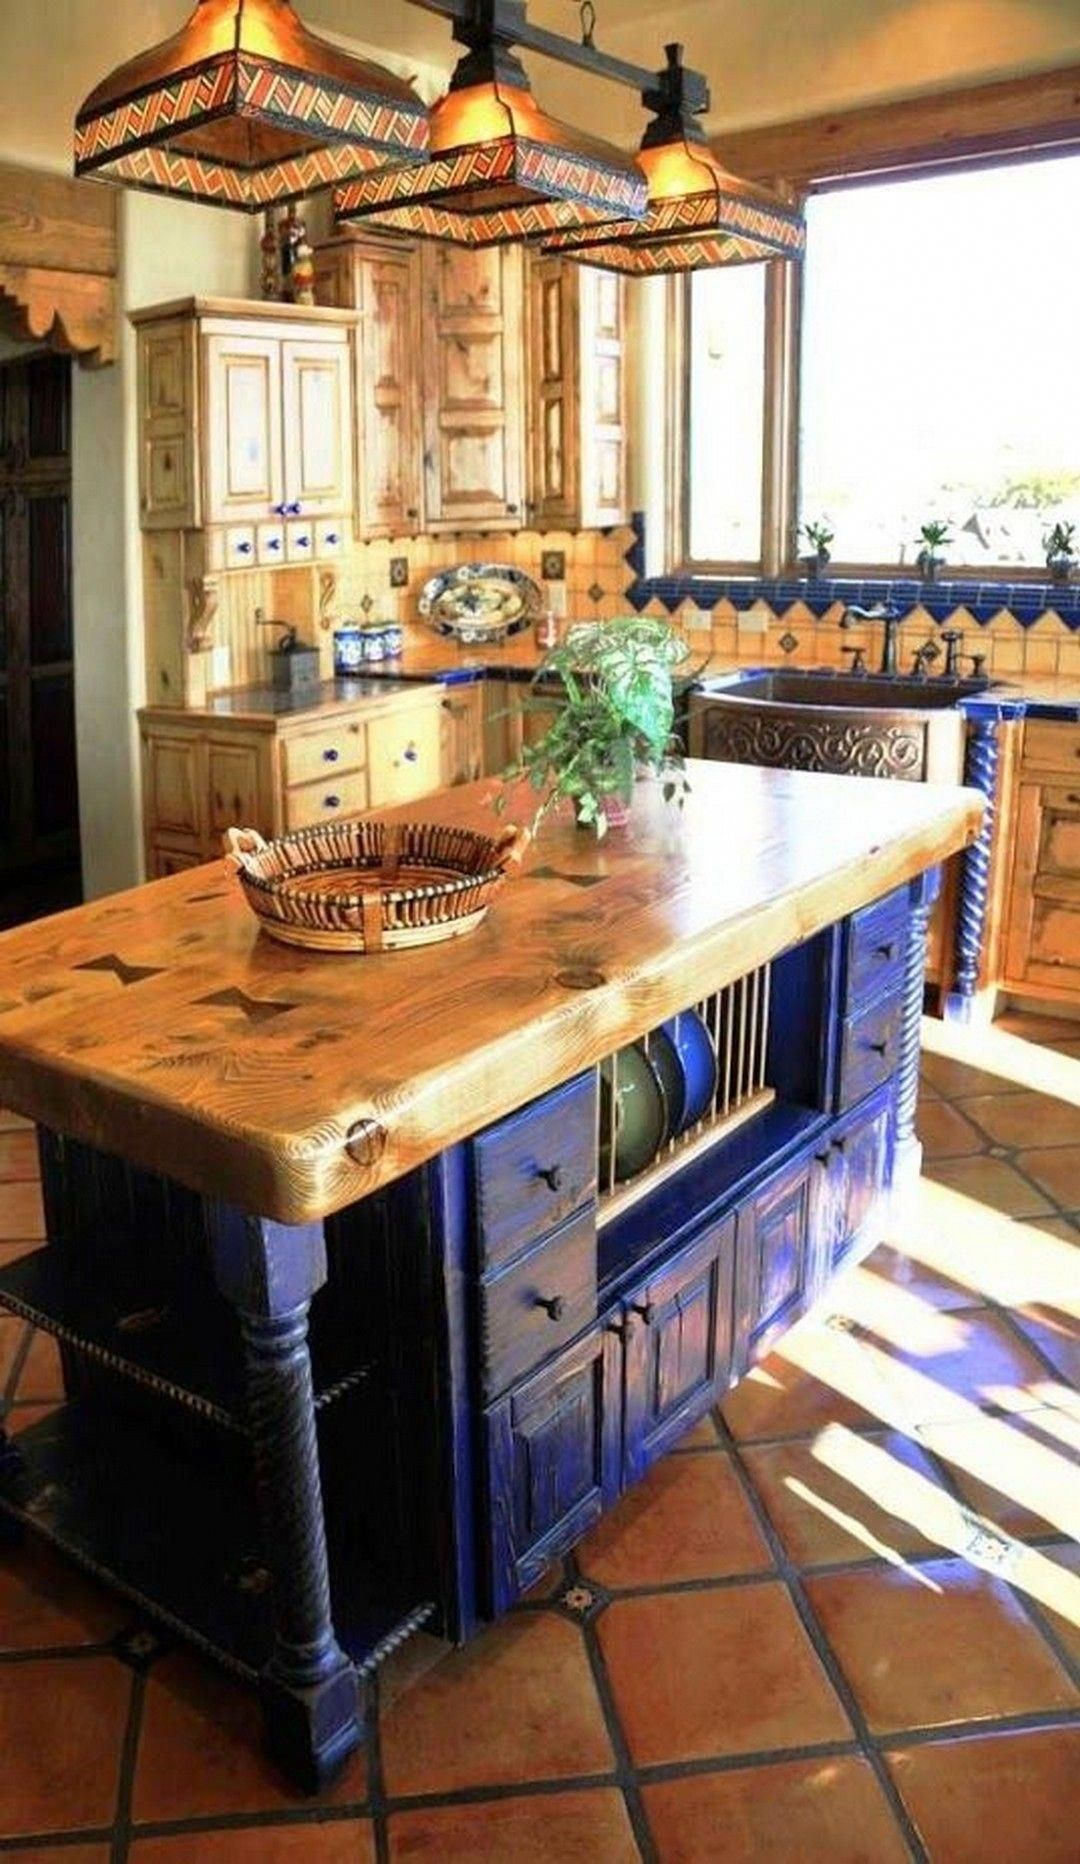 Spanish Style Homes For Sale Inland Empire Spanishstylehomes Small Kitchen Design Layout Simple Kitchen Design Kitchen Design Small